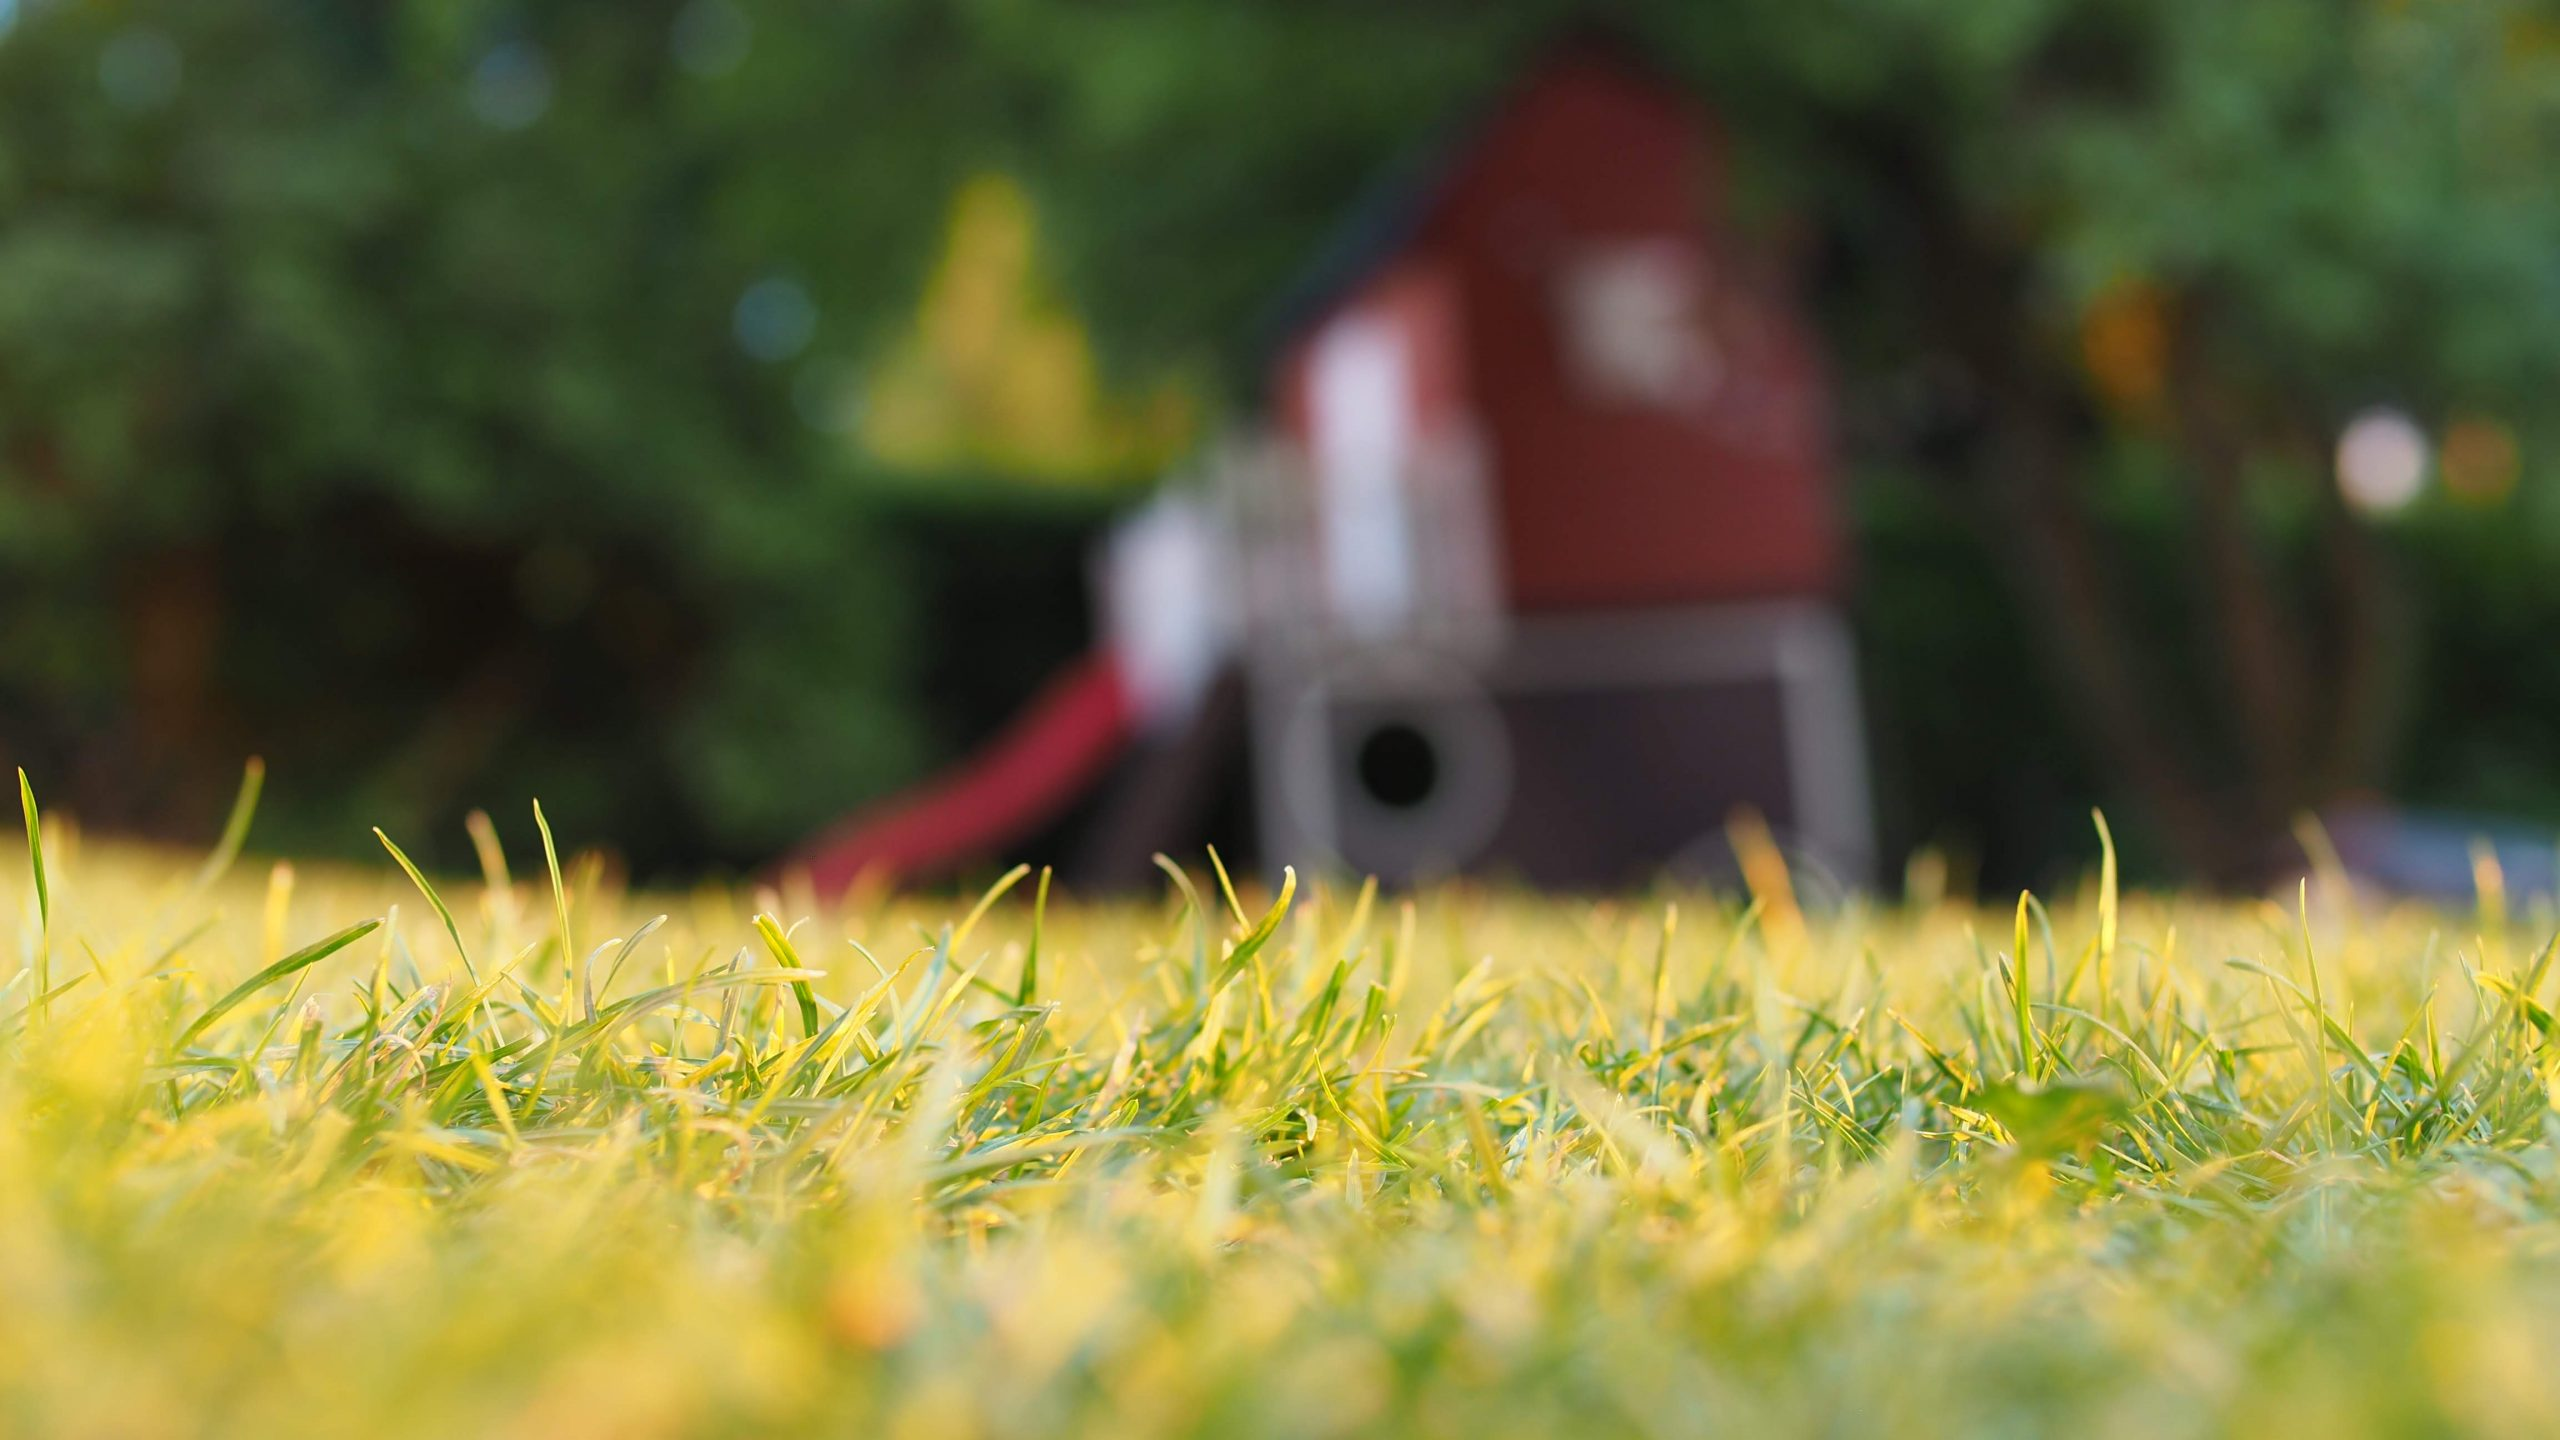 best local lawn care company in Crestwood mowing the lawn